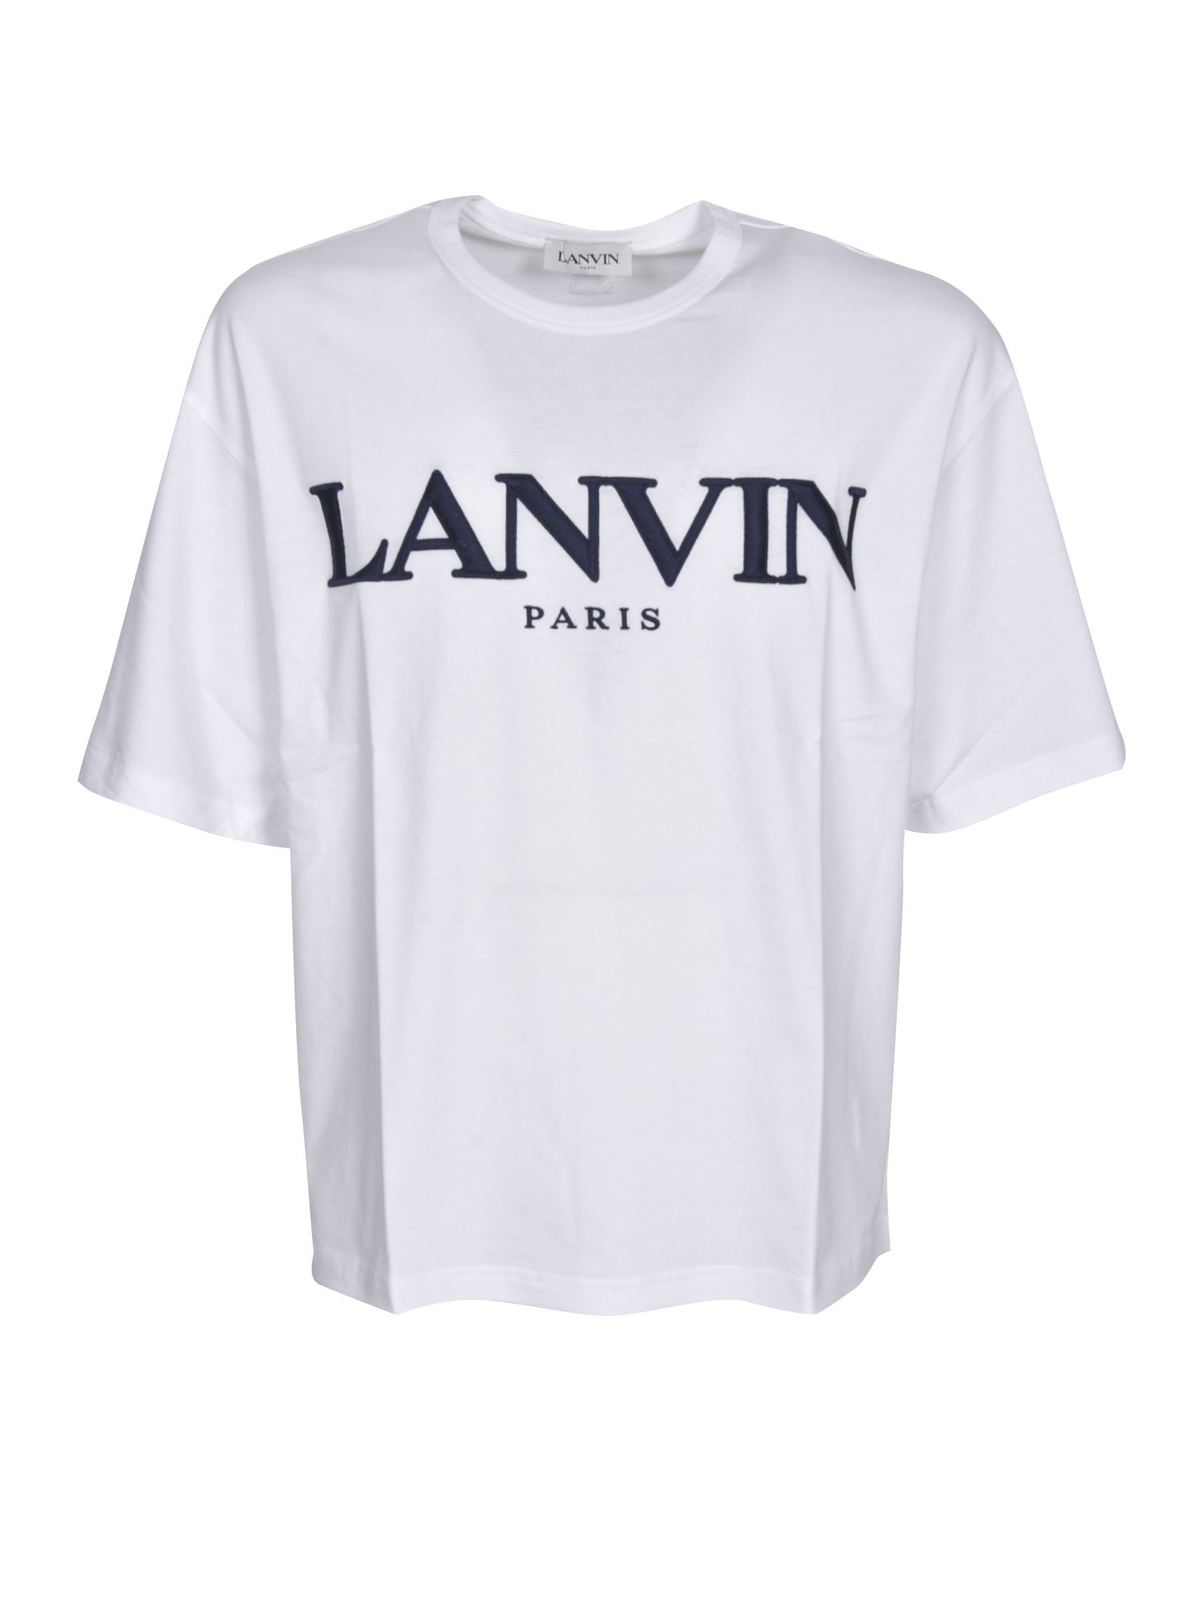 Lanvin BRANDED T-SHIRT IN WHITE AND BLACK